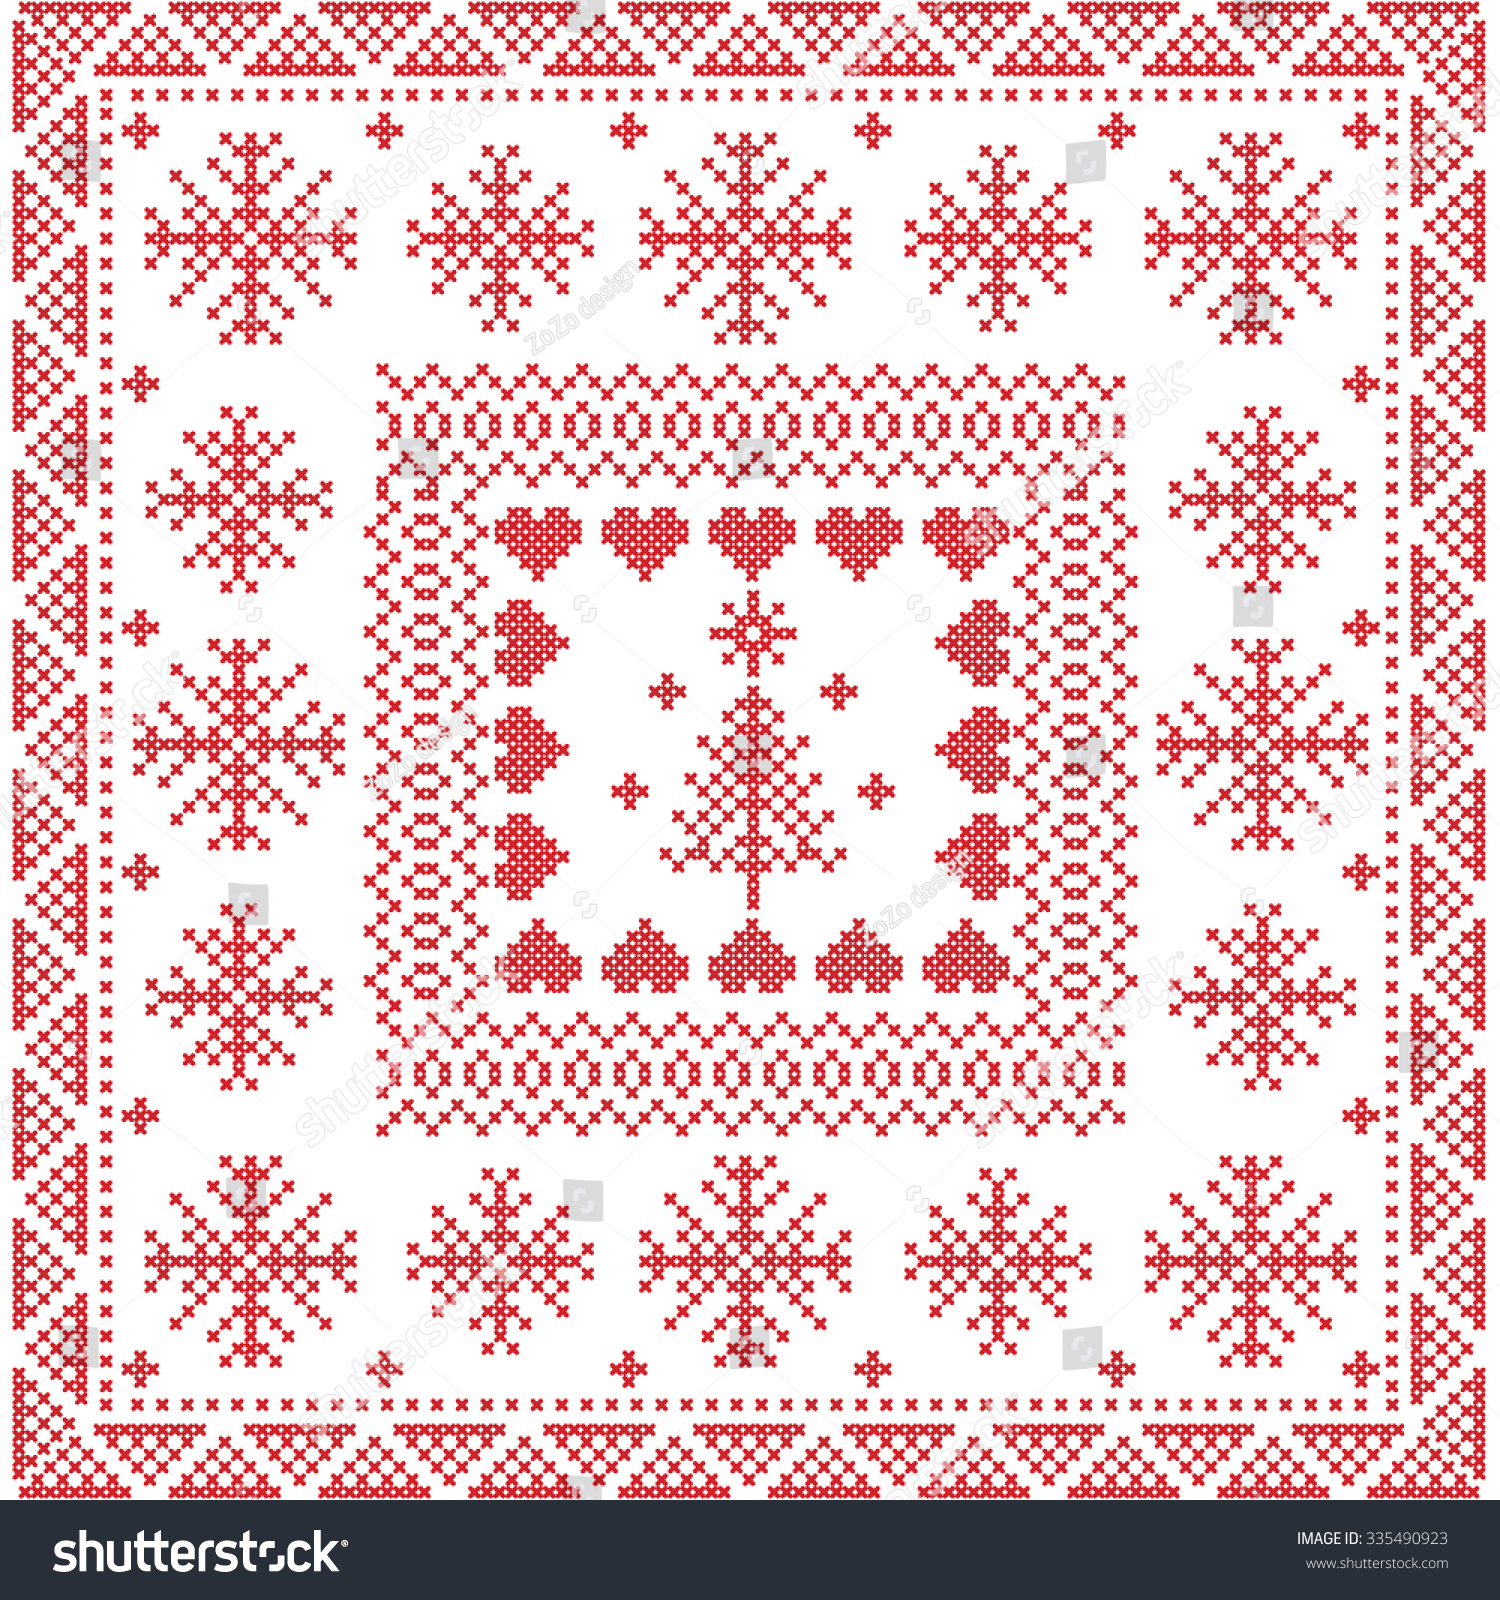 style nordic winter stitch knitting seamless pattern in the square tile shape including